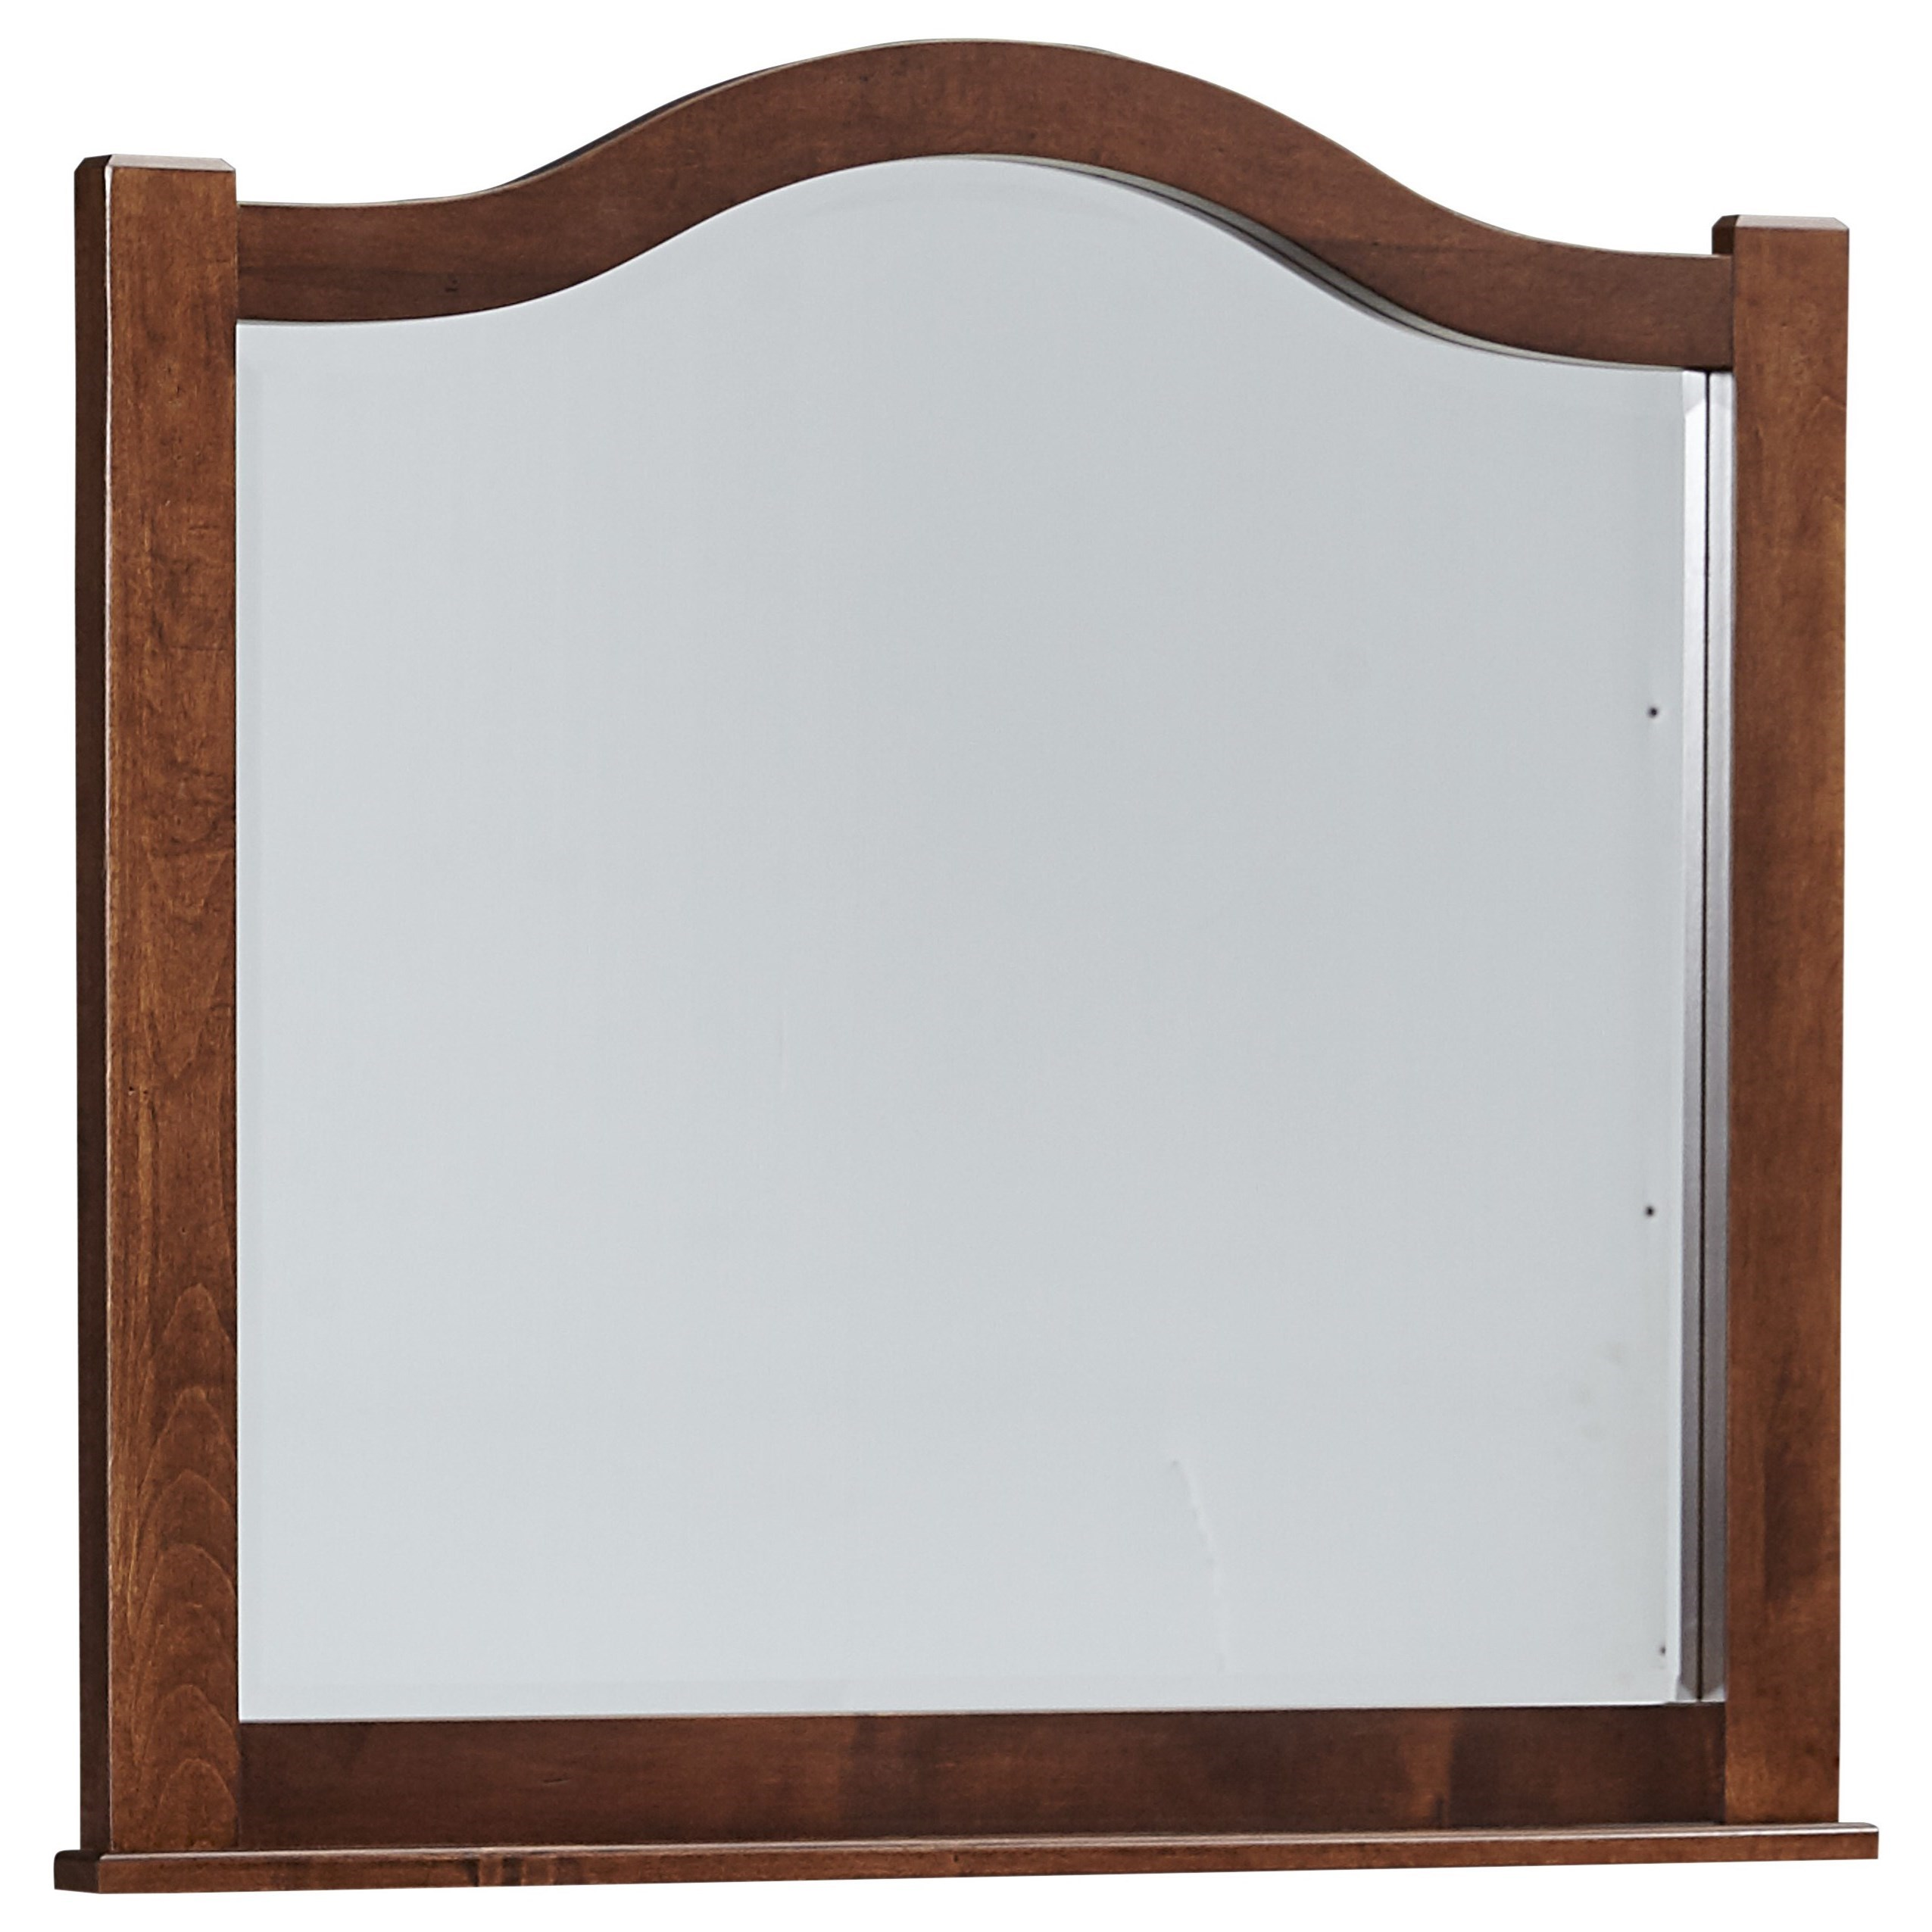 Vaughan Bassett American Maple Arched Mirror - Beveled Glass - Item Number: 400-447